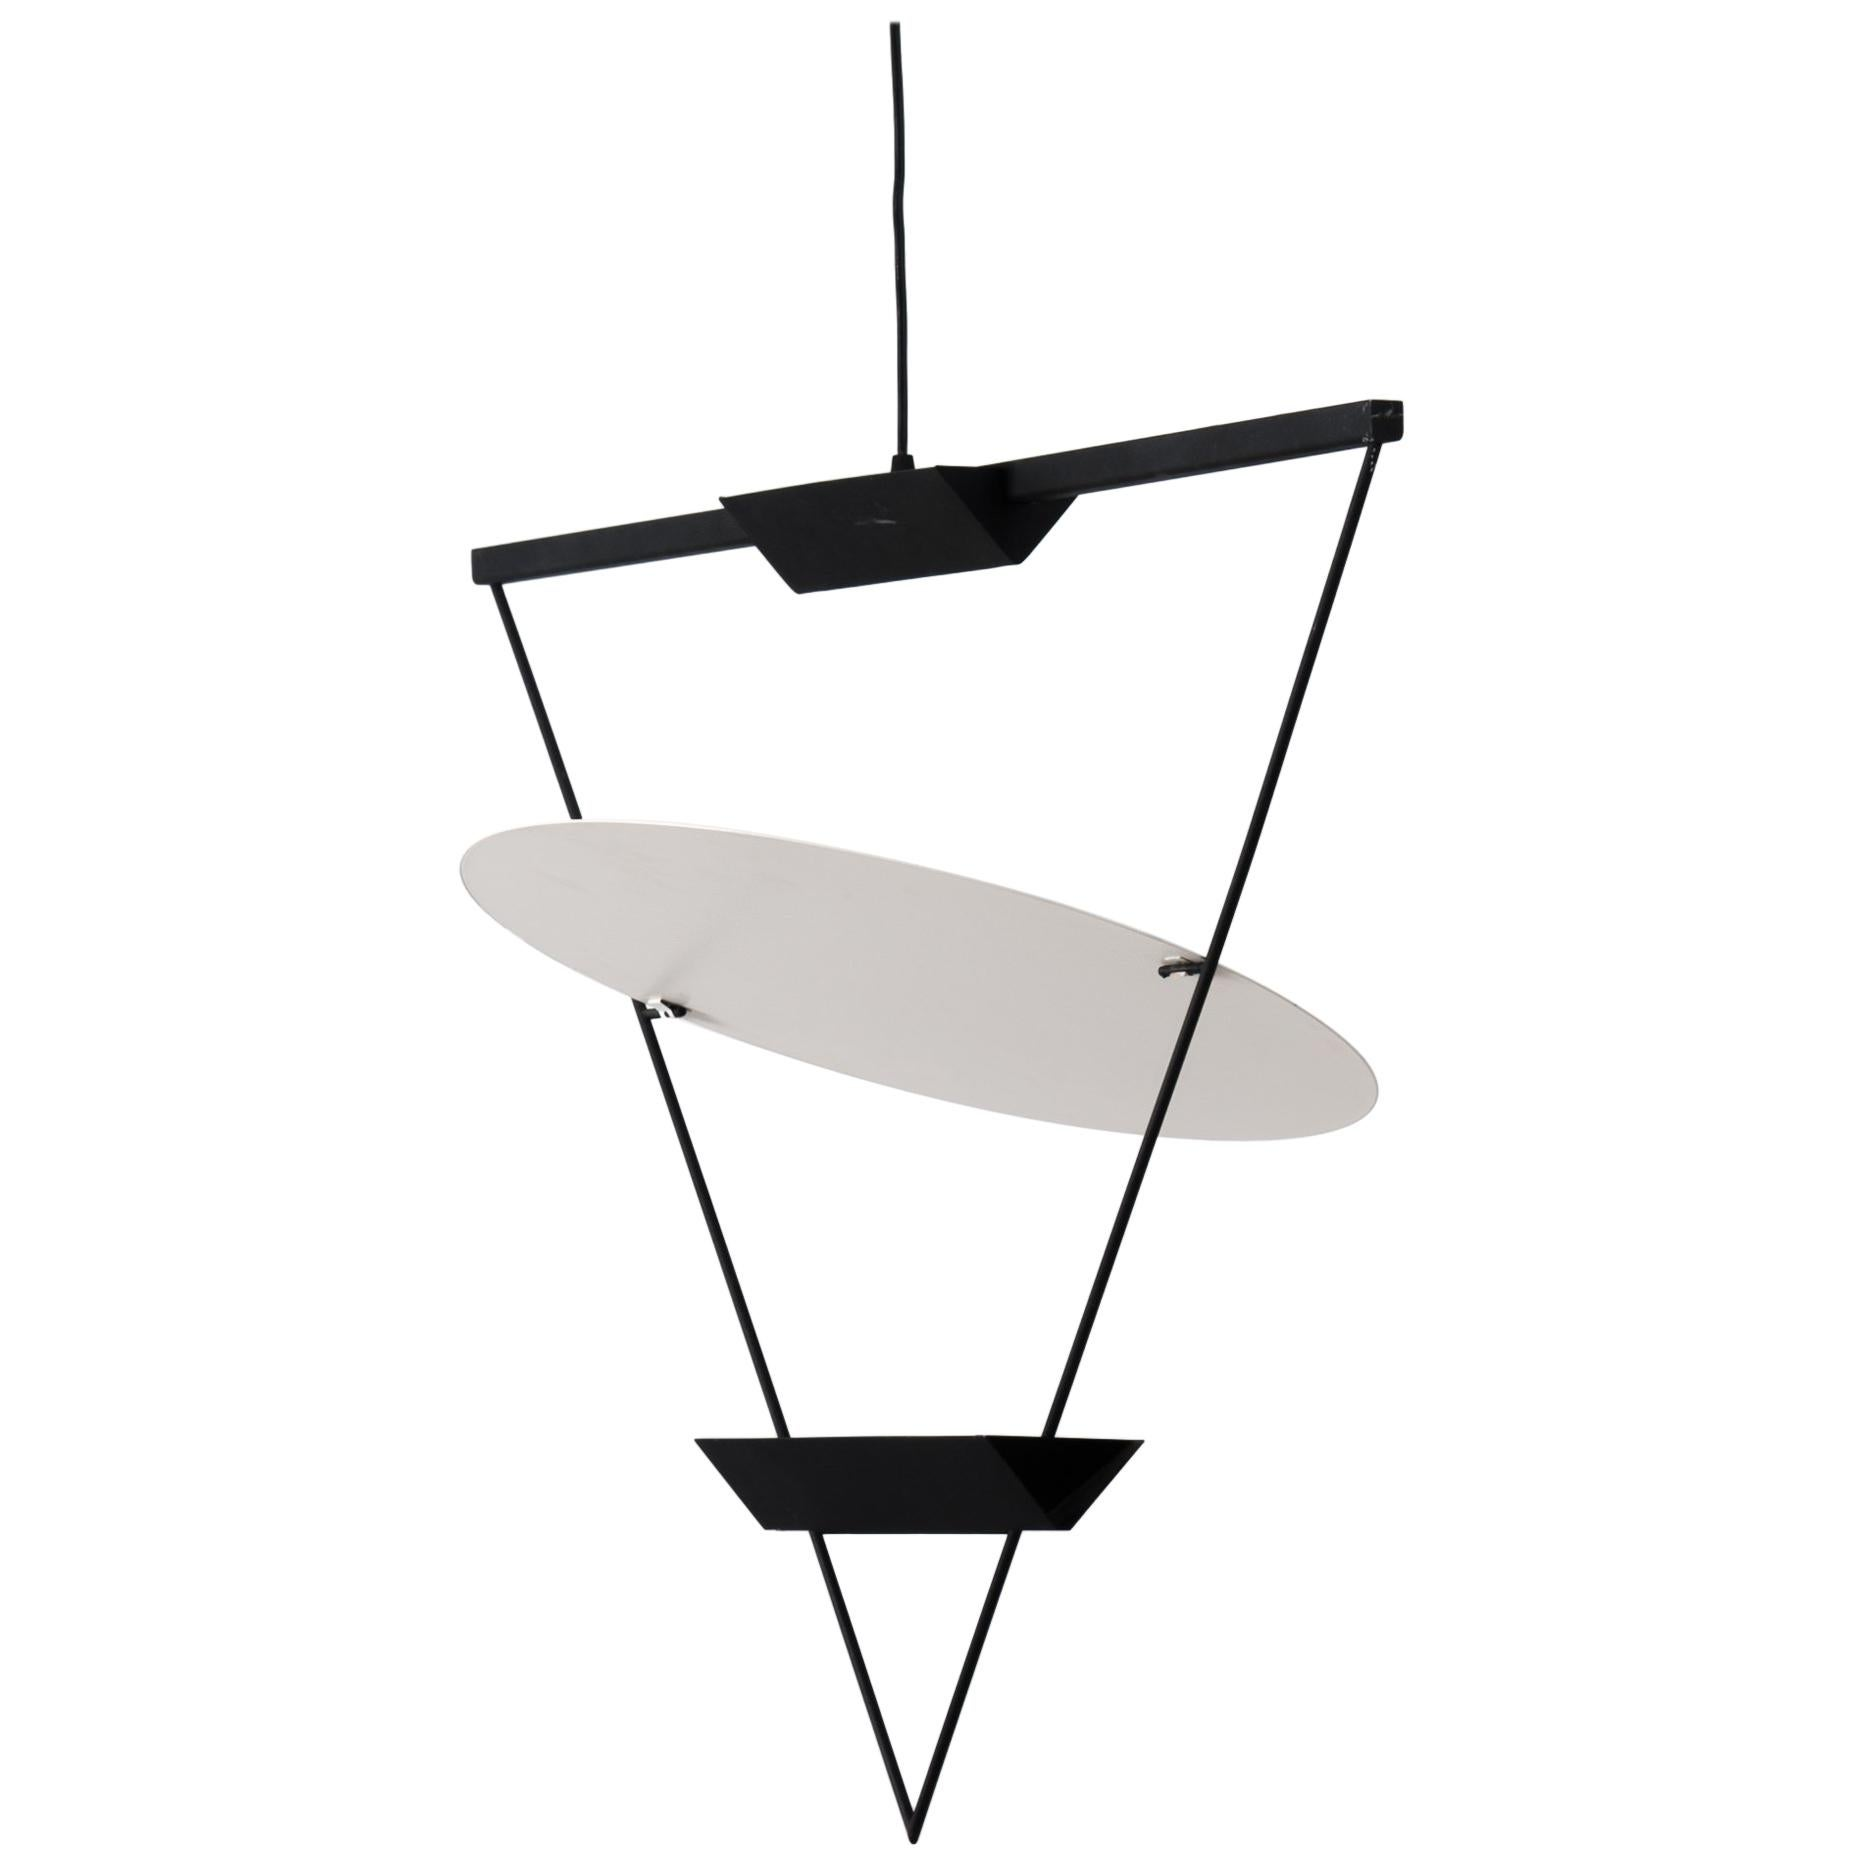 Artemide Zefiro Inverted Triangle Lamp By Mario Botta For Artemide, 1985